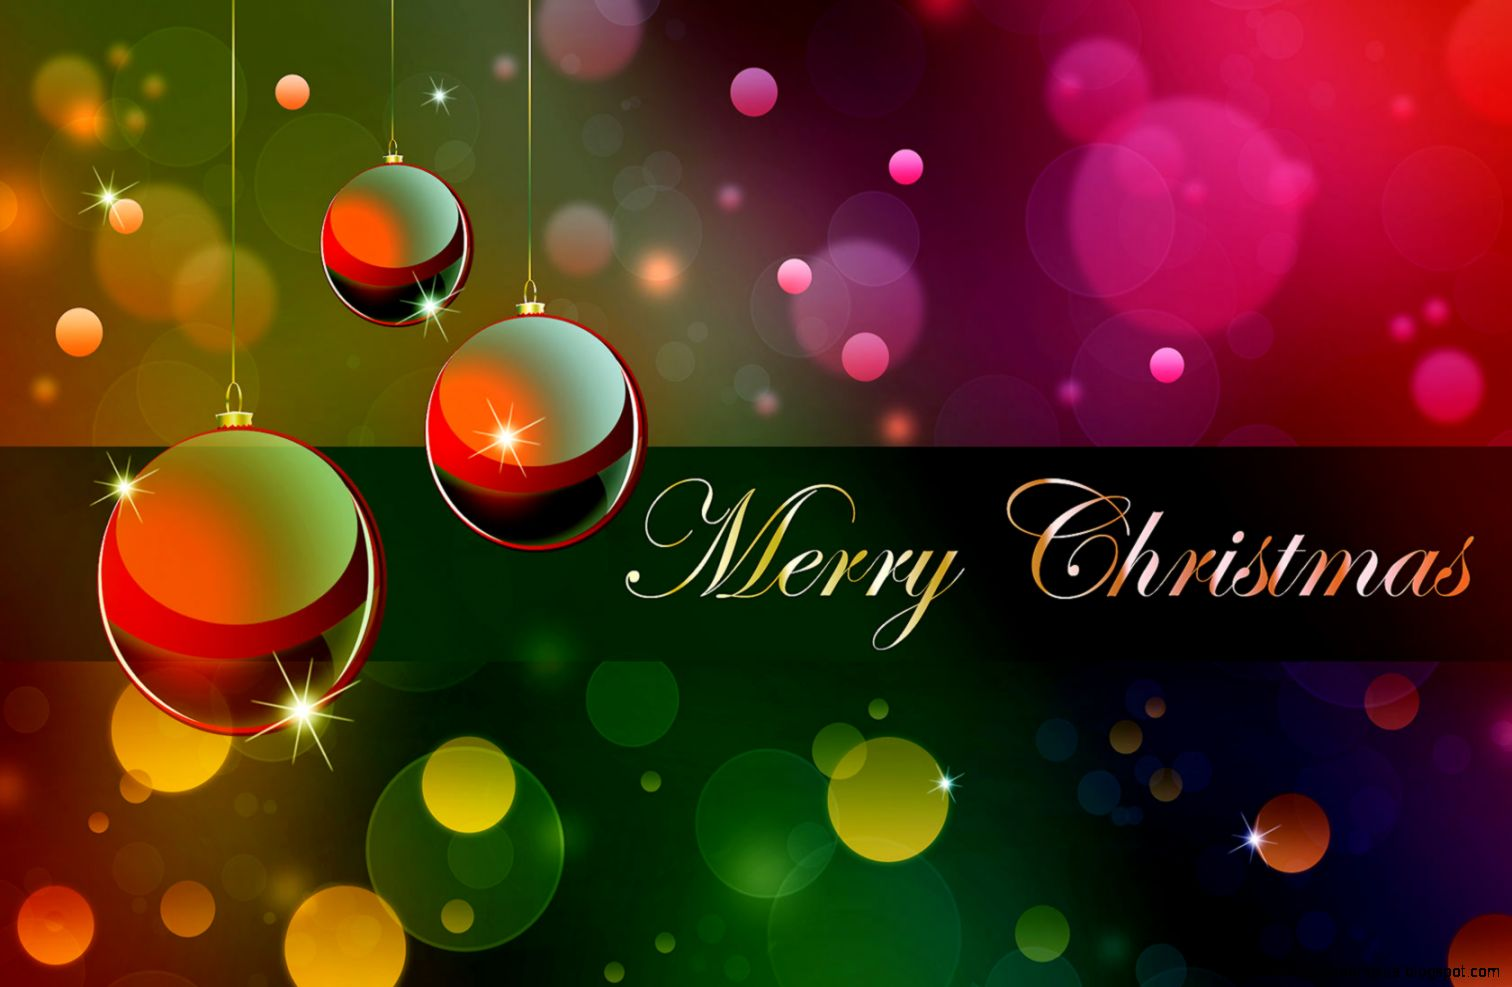 Merry Christmas Wallpaper Hd Widescreen